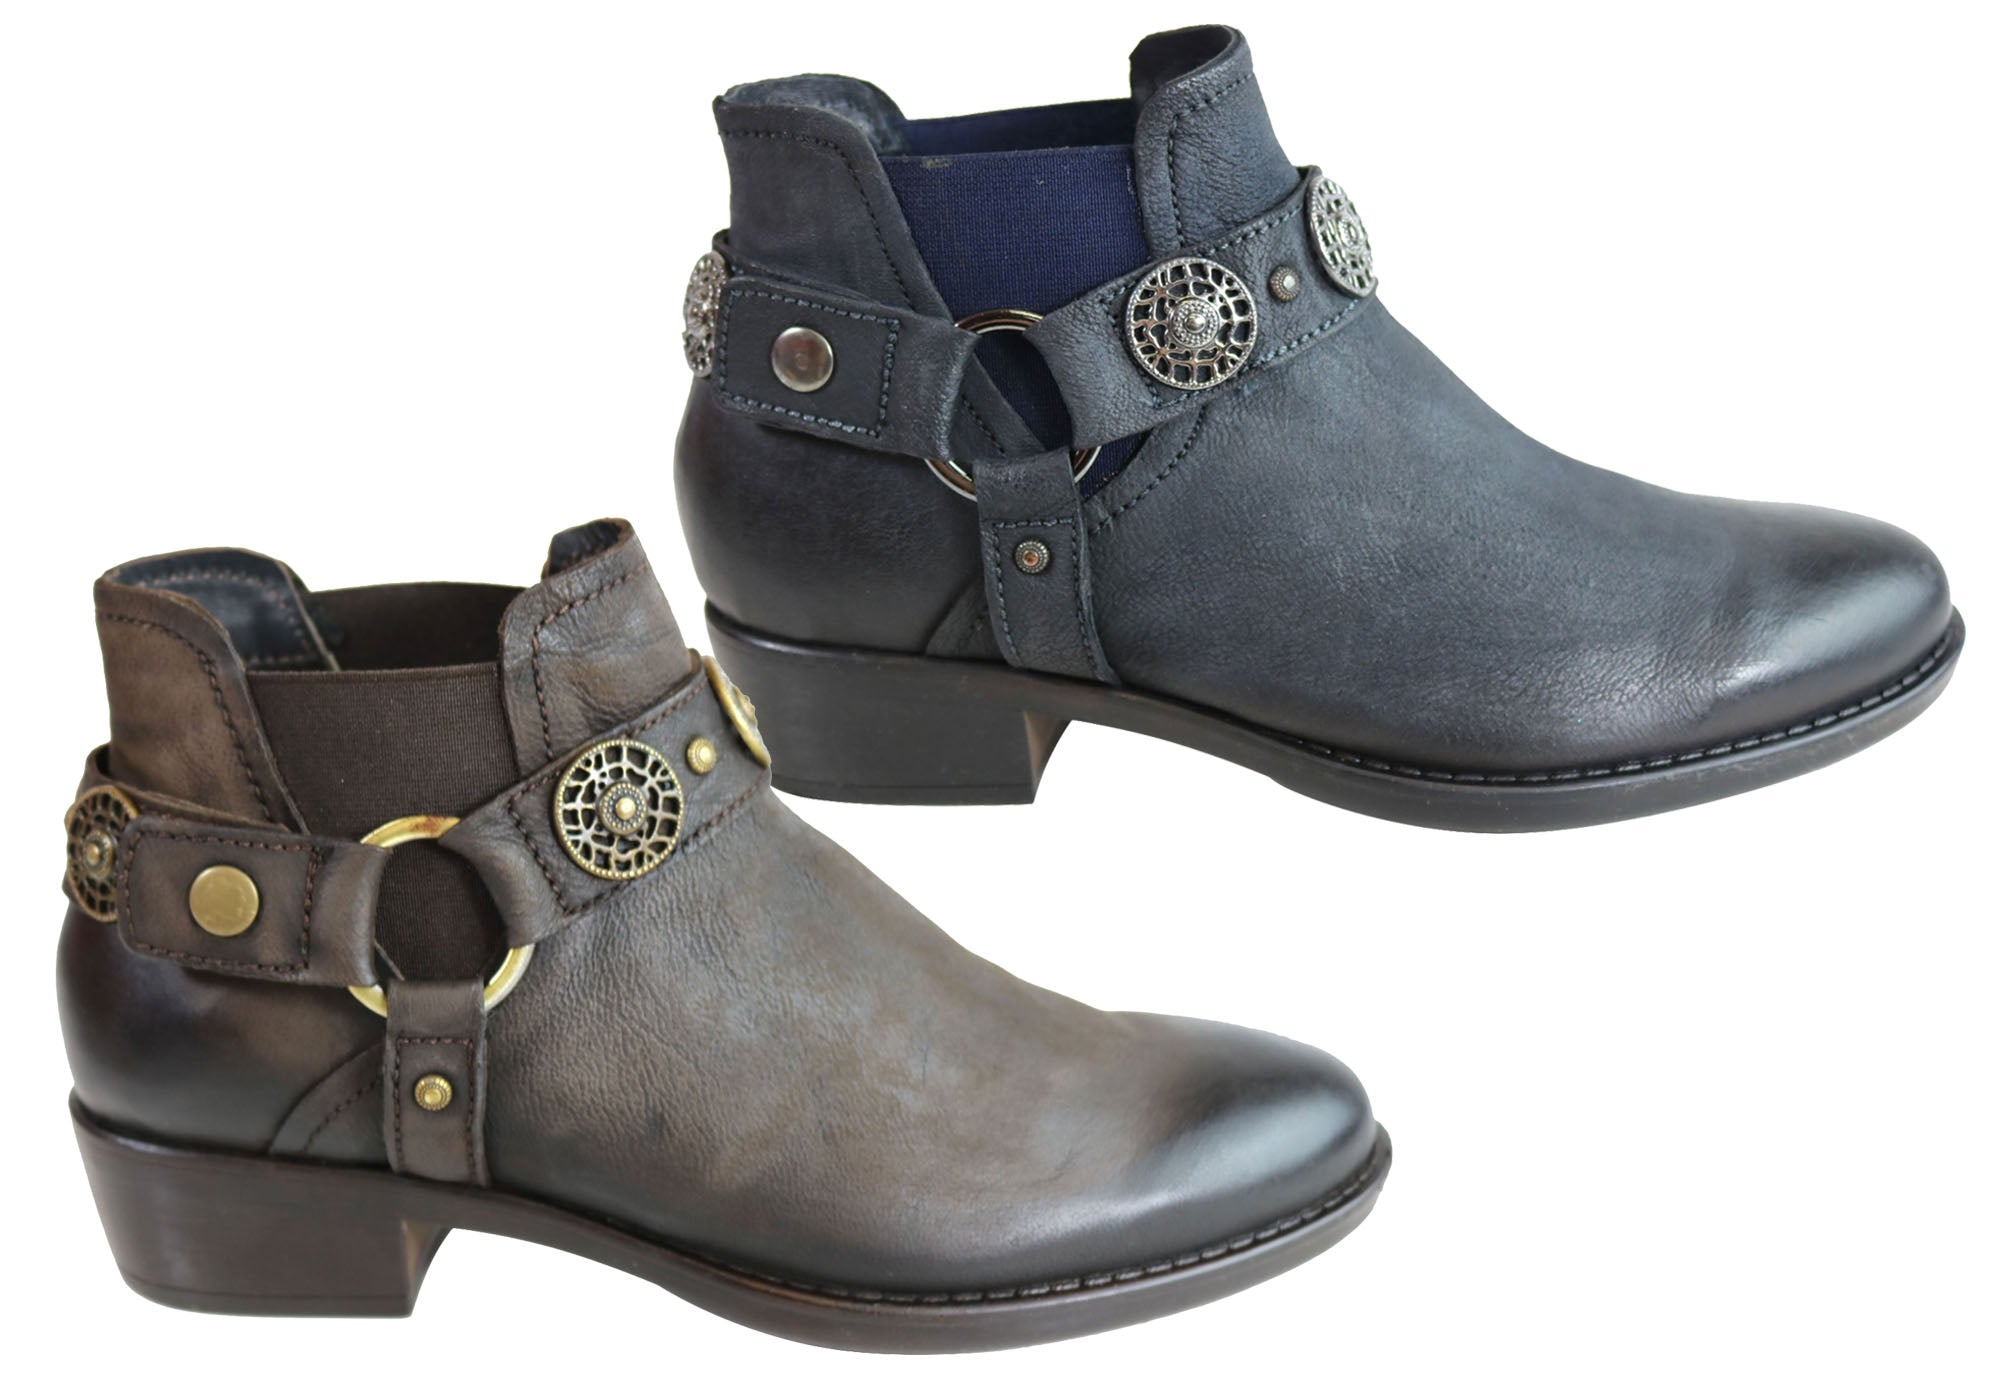 best service b0e44 c3b3f Details about Inuovo Deimos Womens Leather Fashion Low Heel Ankle Boots -  ShopShoesAU